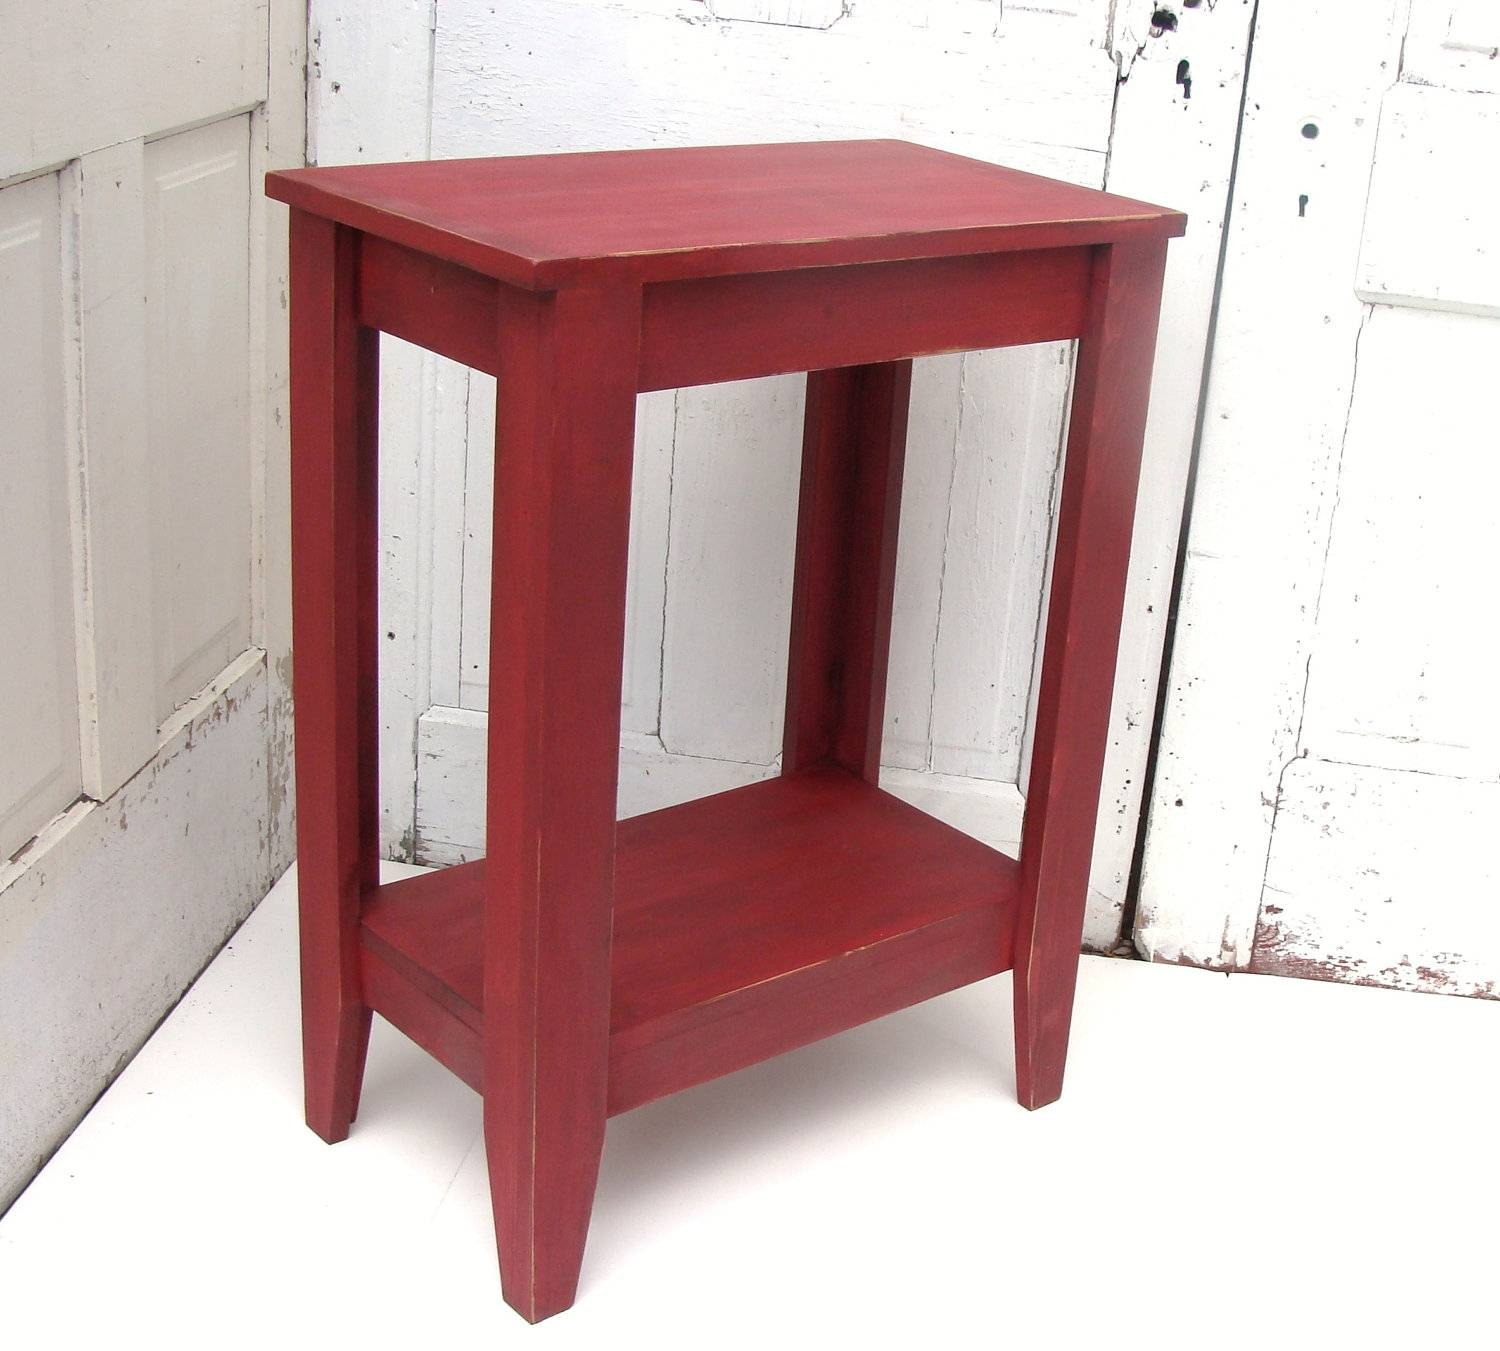 Entryway Table Side Table Console Table Rustic in Red Sofa Tables (Image 1 of 15)